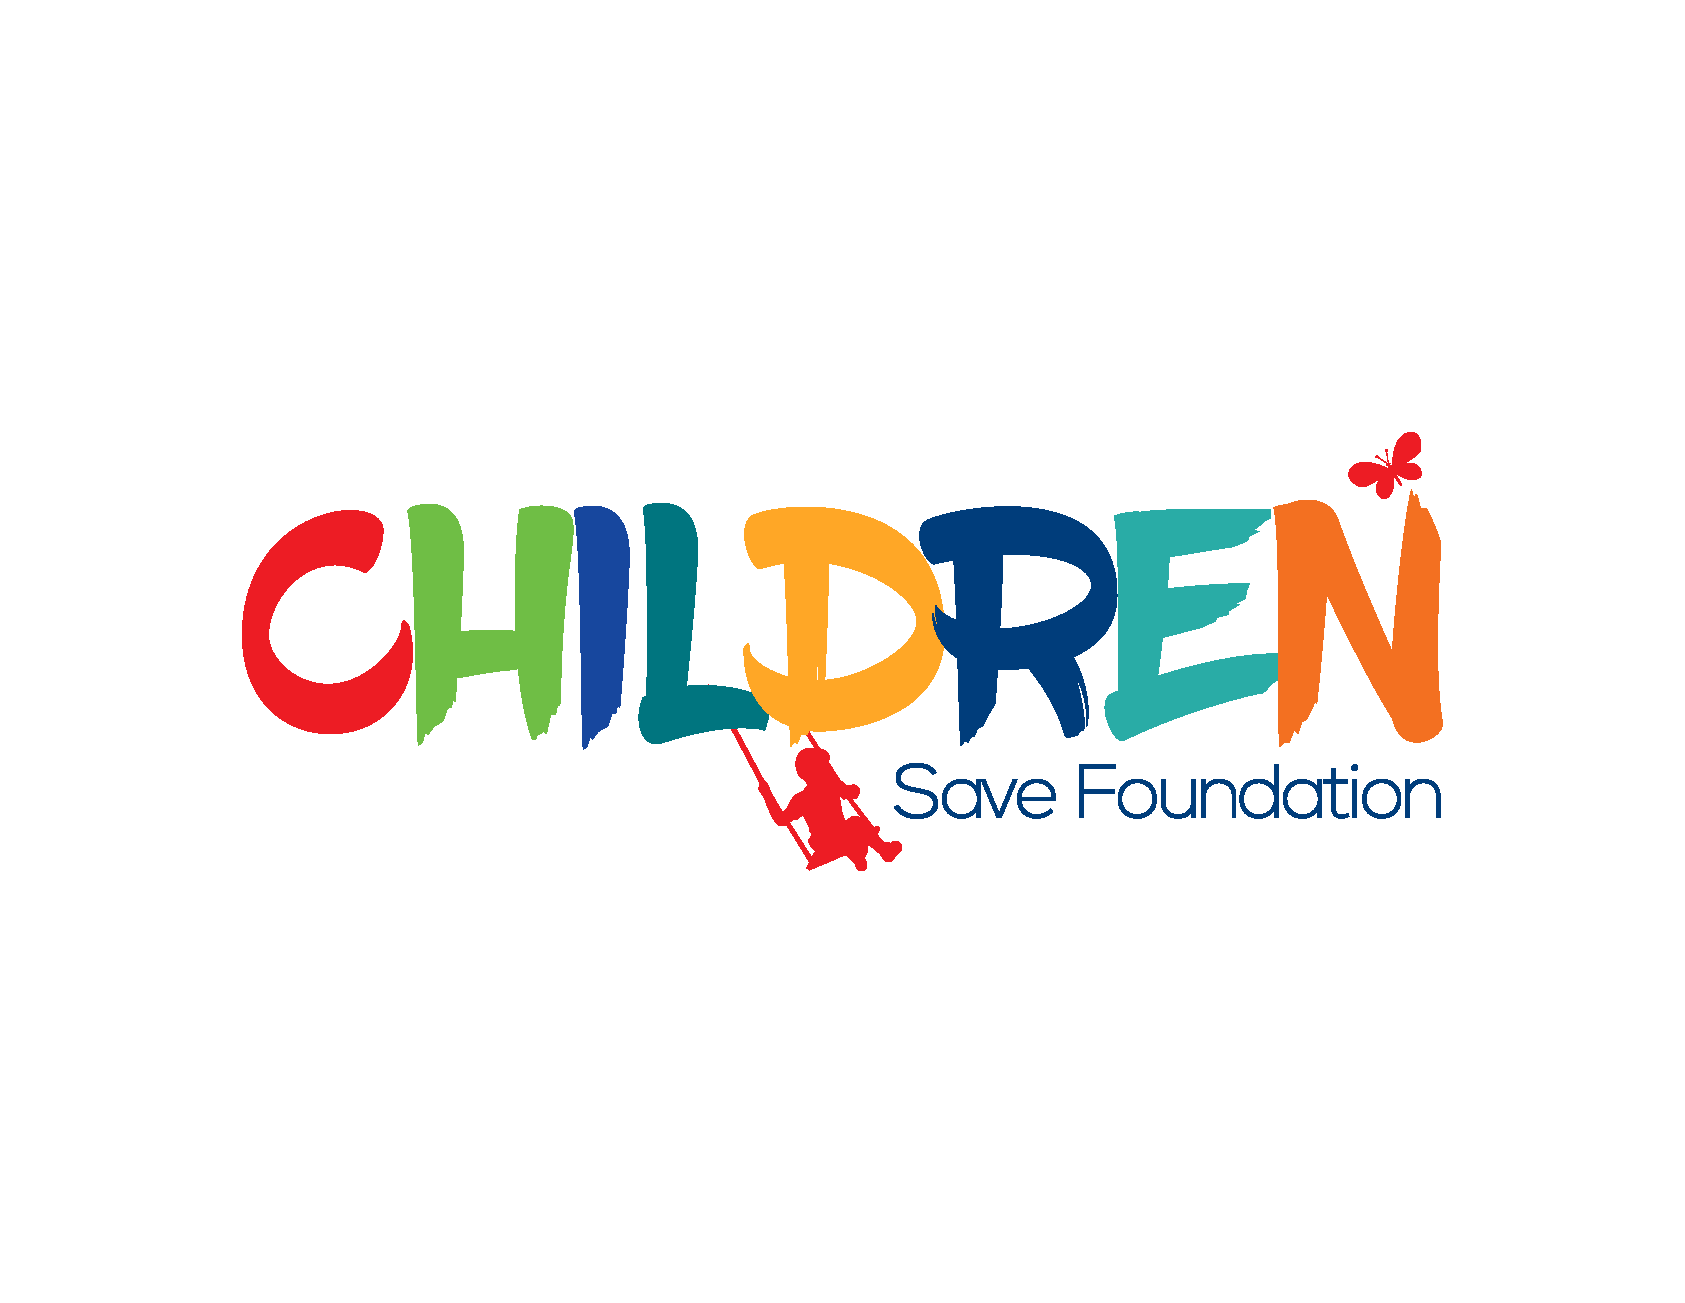 Kids Charity Logo Design by LogoSkill